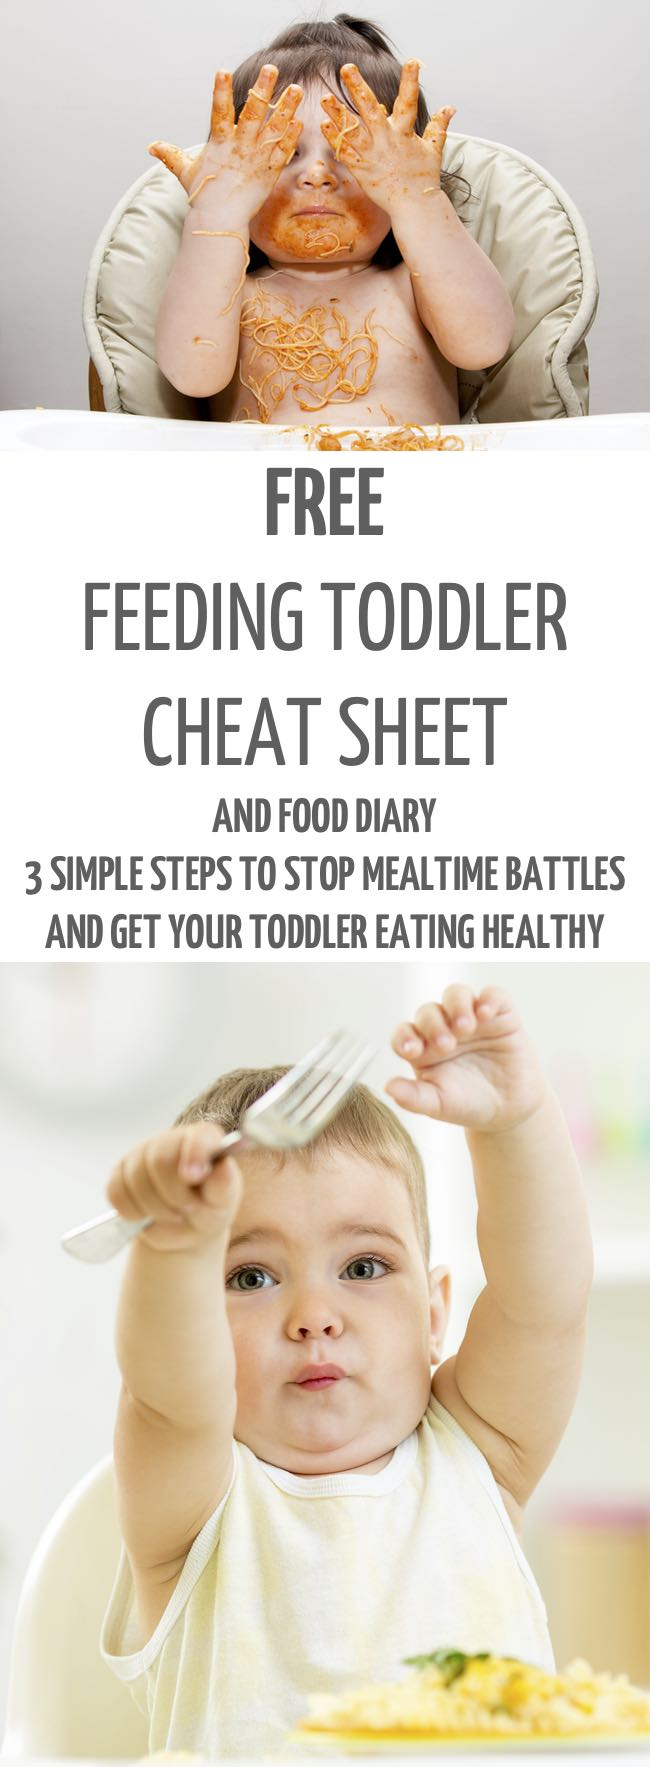 3 Simple steps to teach your fussy toddler to eat healthy. Even if your toddler won't eat anything, learn how to stop meal time battles and find the stress free way to teach them healthy eating habits. #toddler #fussyeater #fussytoddler #toddlerwon'teat #pickyeater #parenting #positiveparenting.. #toddler #fussyeater #fussytoddler #toddlerwon'teat #pickyeater #parenting #positiveparenting.